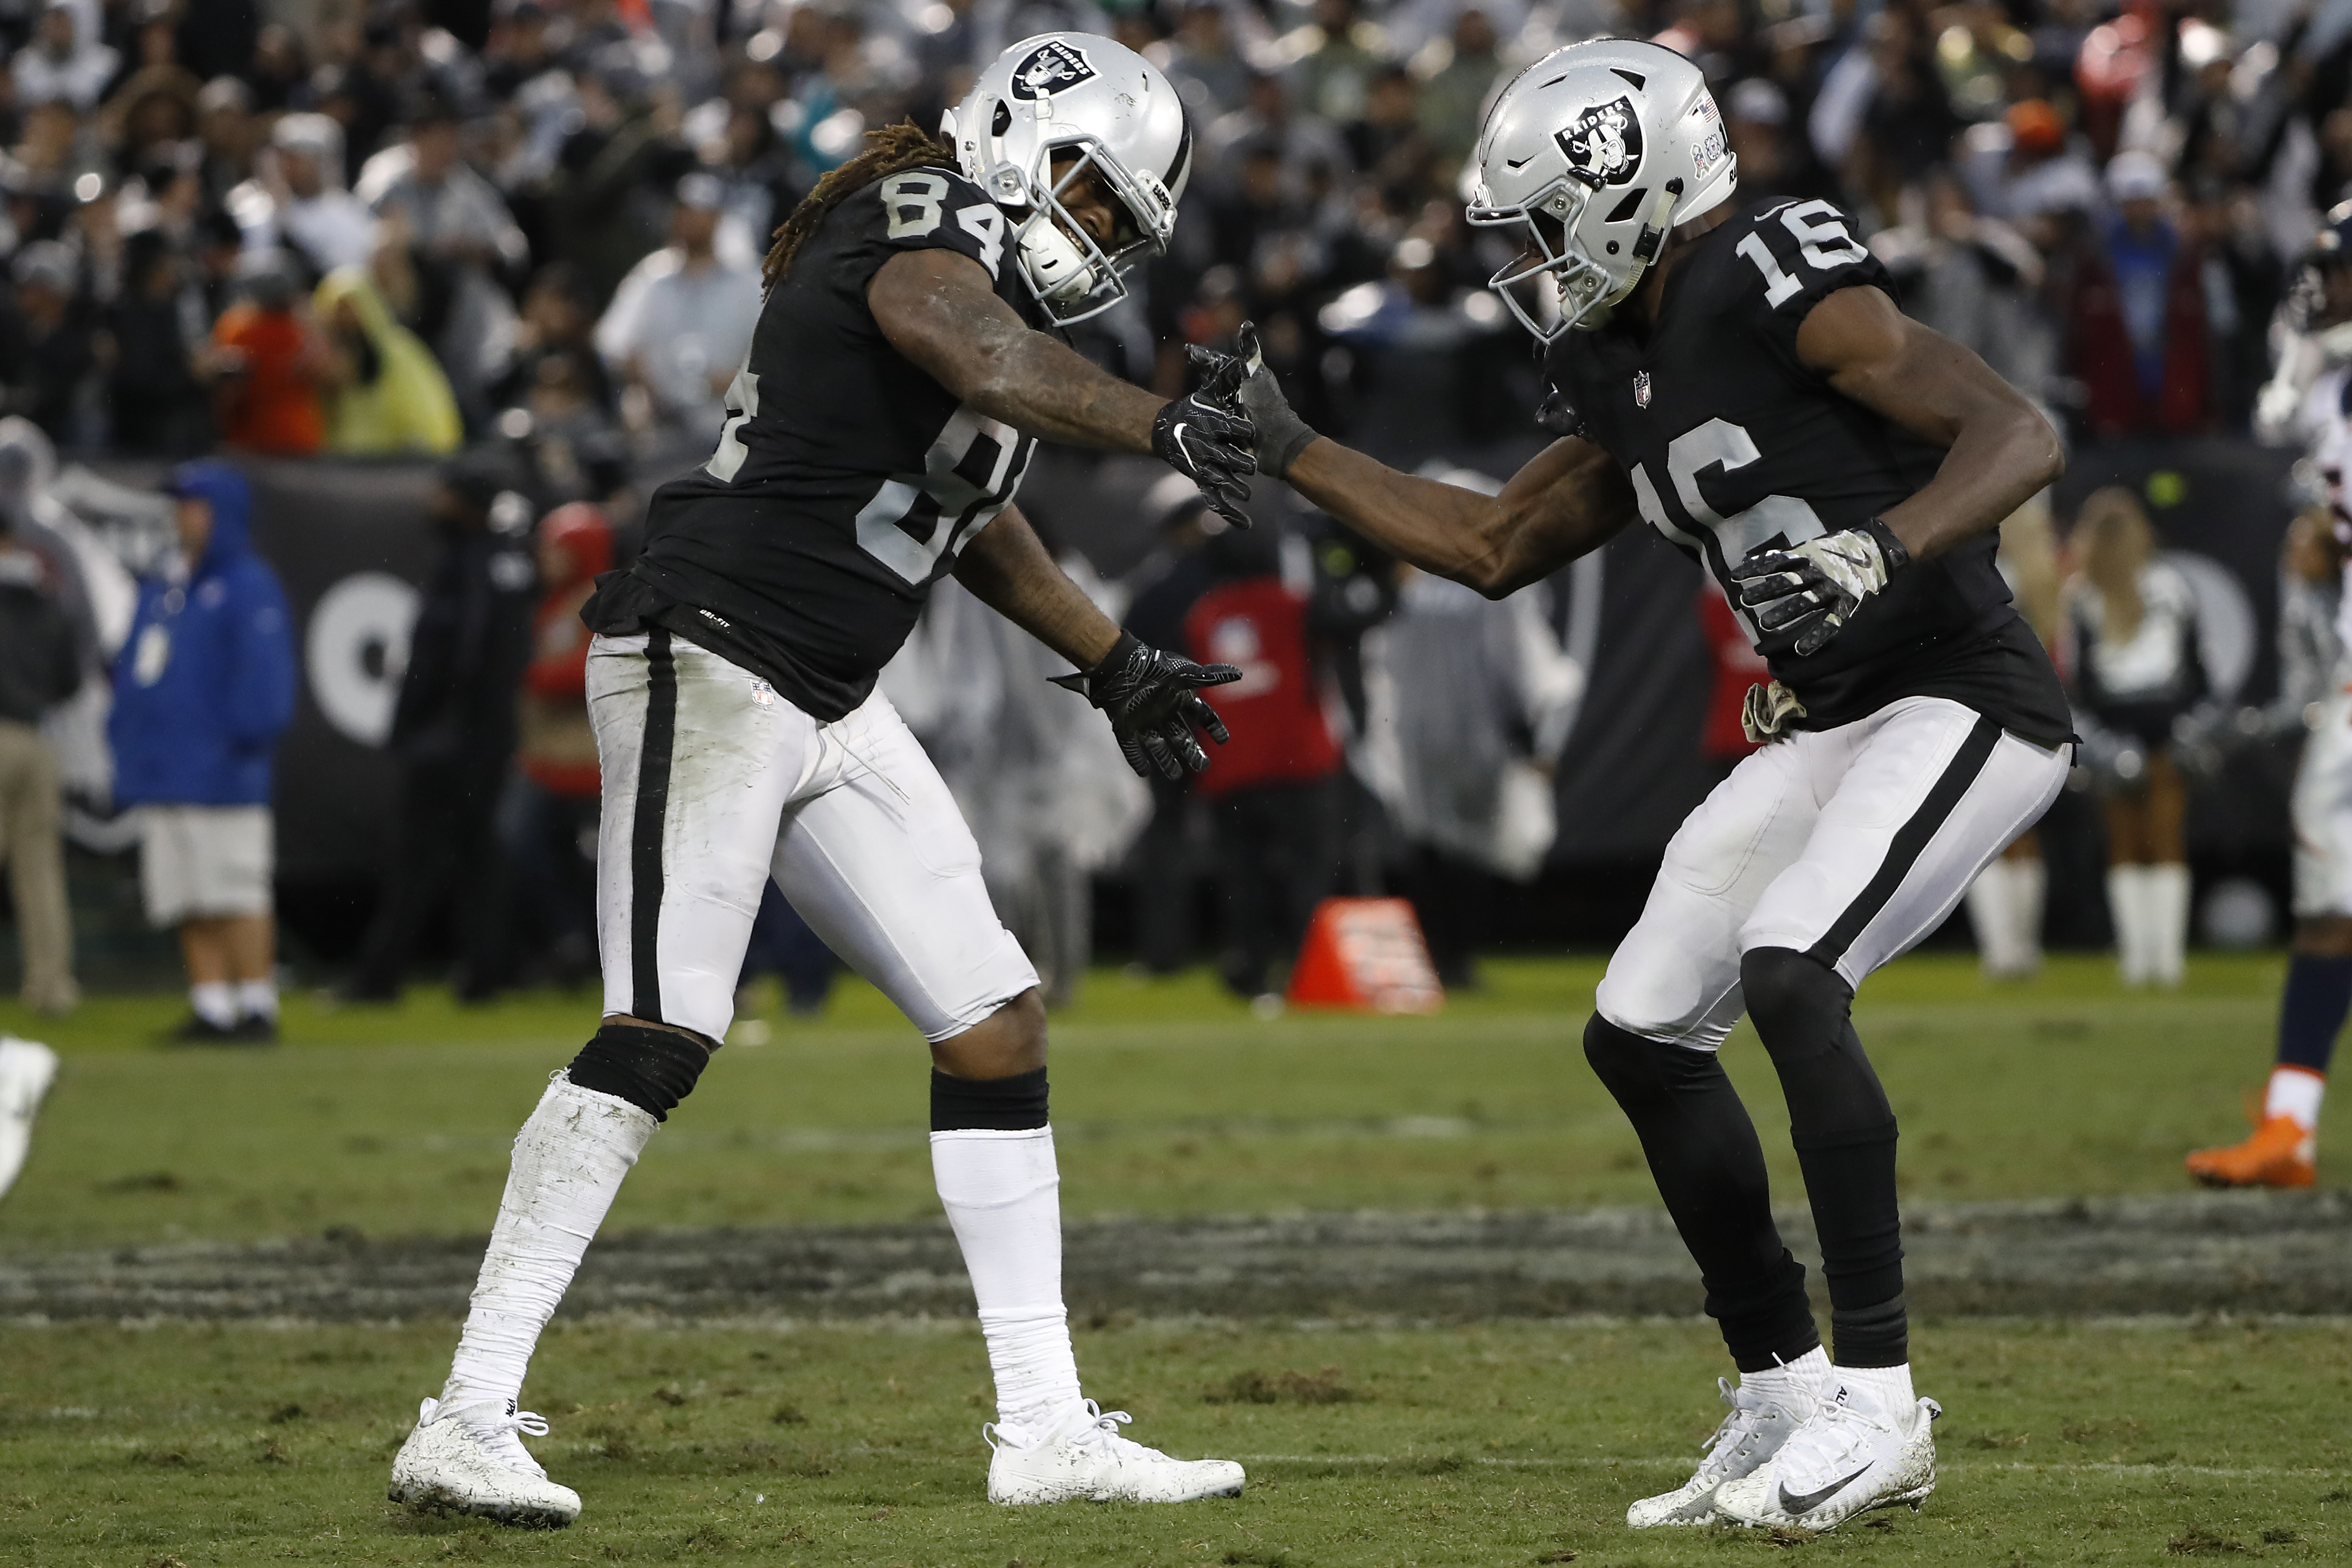 CB Amerson, LB James inactive for Raiders against Giants